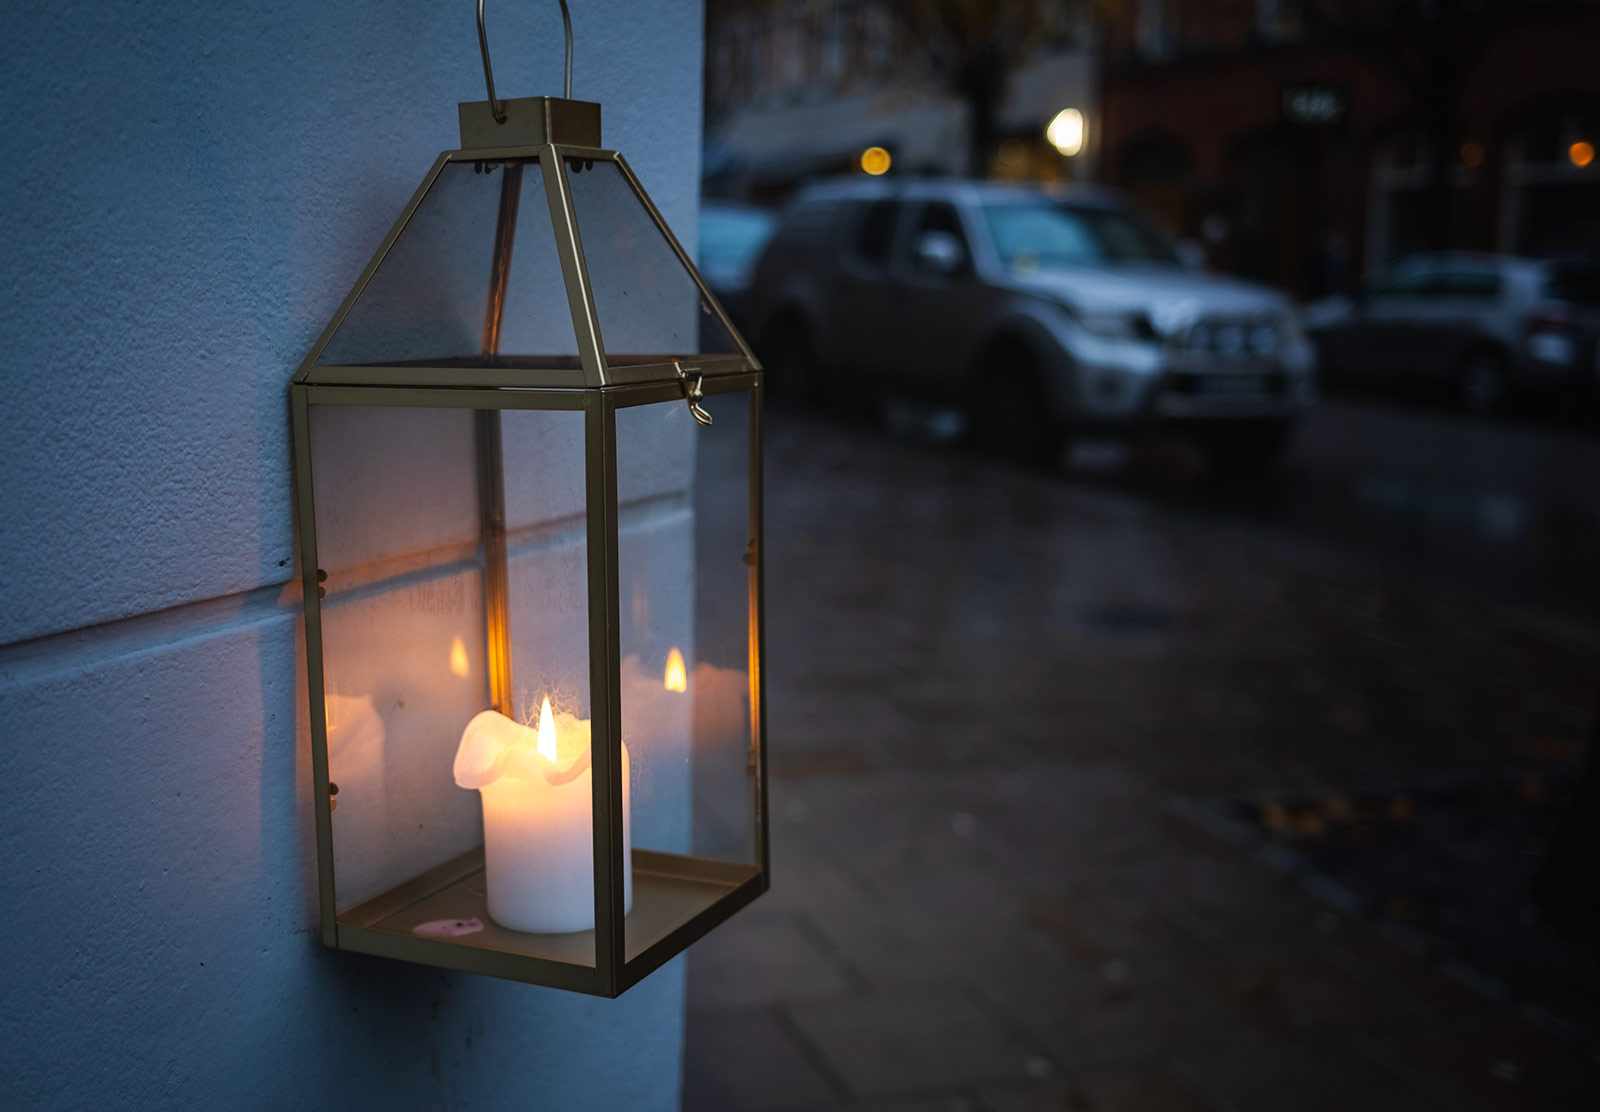 Candle lantern on a wall